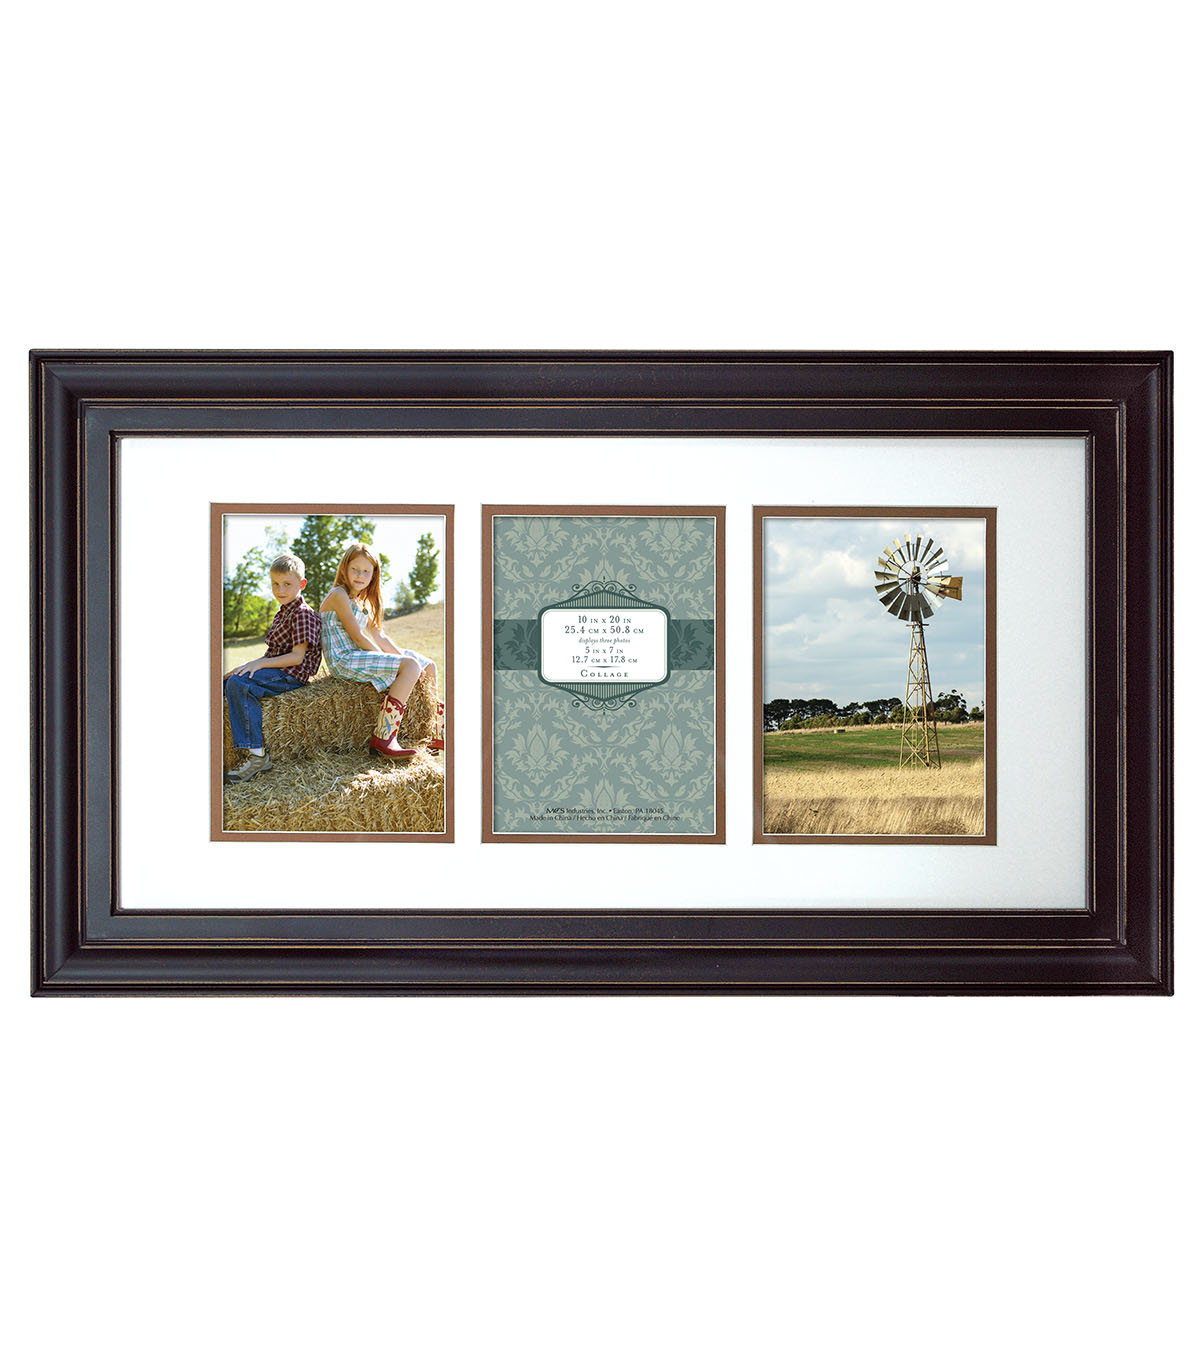 3 picture frames on wall poster wood wall frame 10x20 5x7 photodistressed black op distressed joann